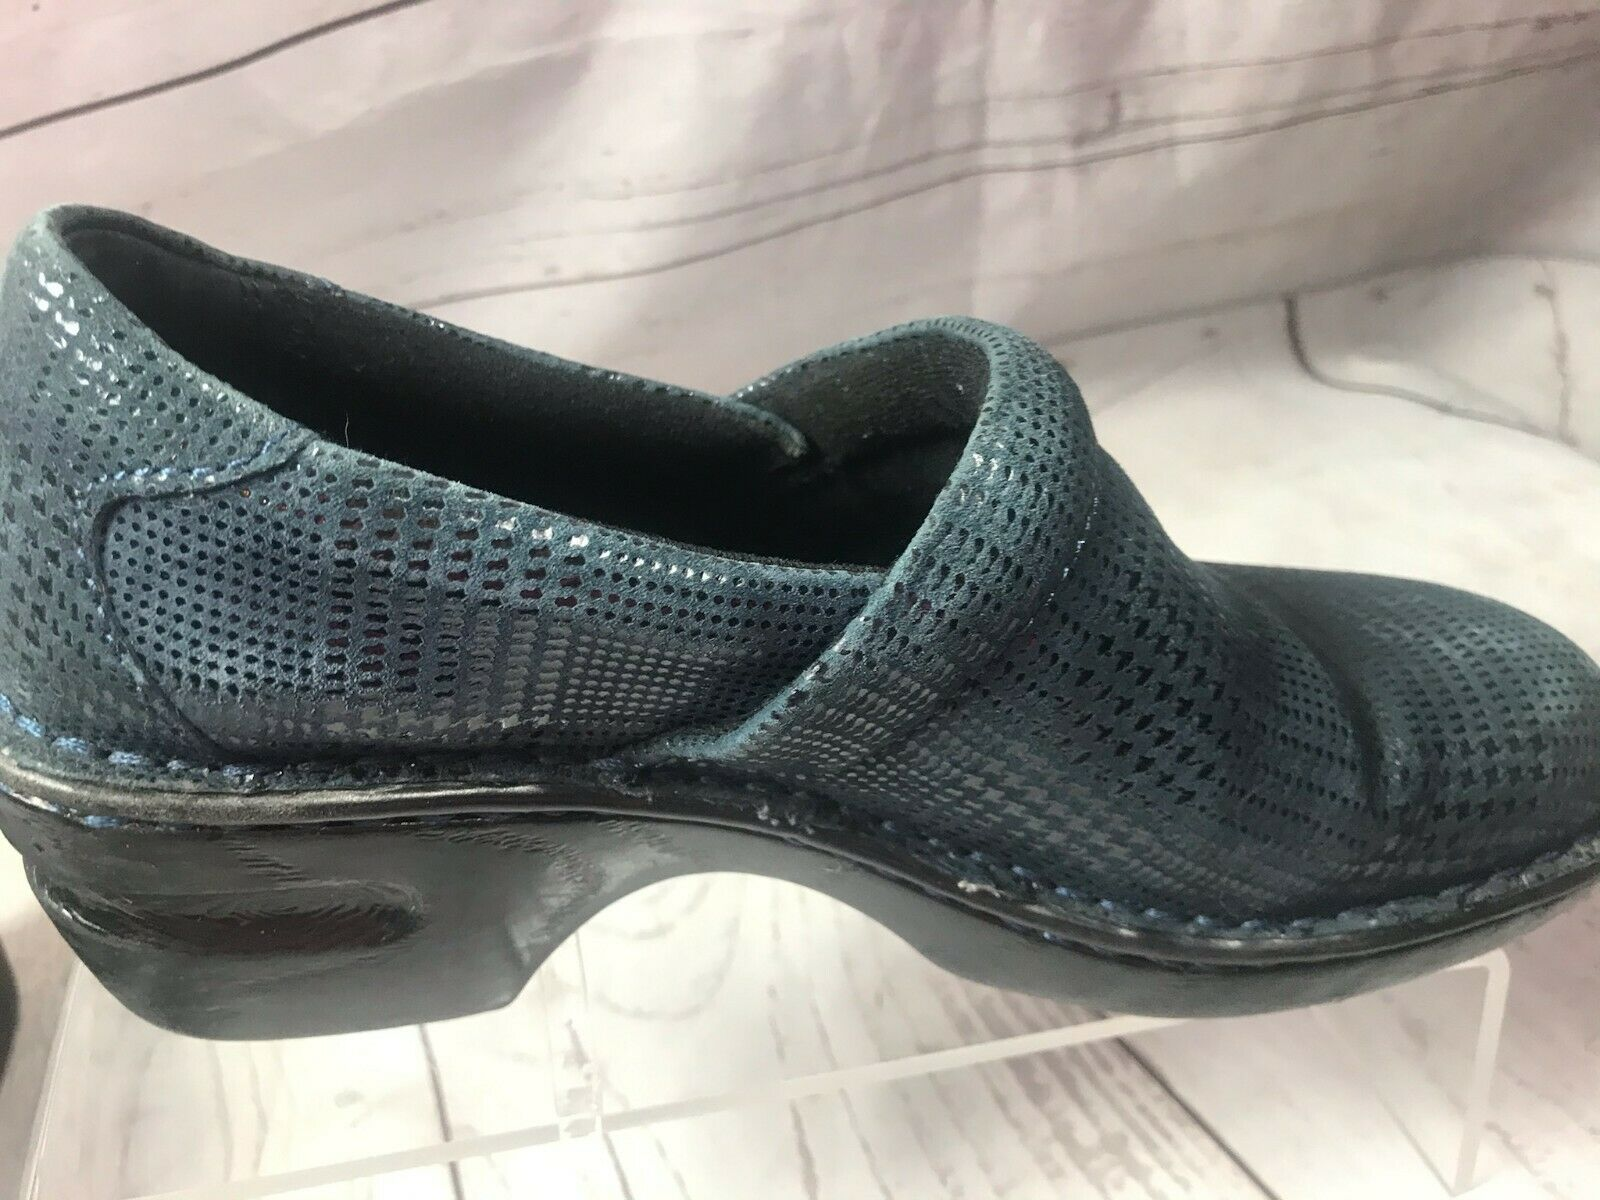 b.o.c. BORN Turquoise Wedged Shoe/Size 7/Textured leather /Comfortable & Classy!